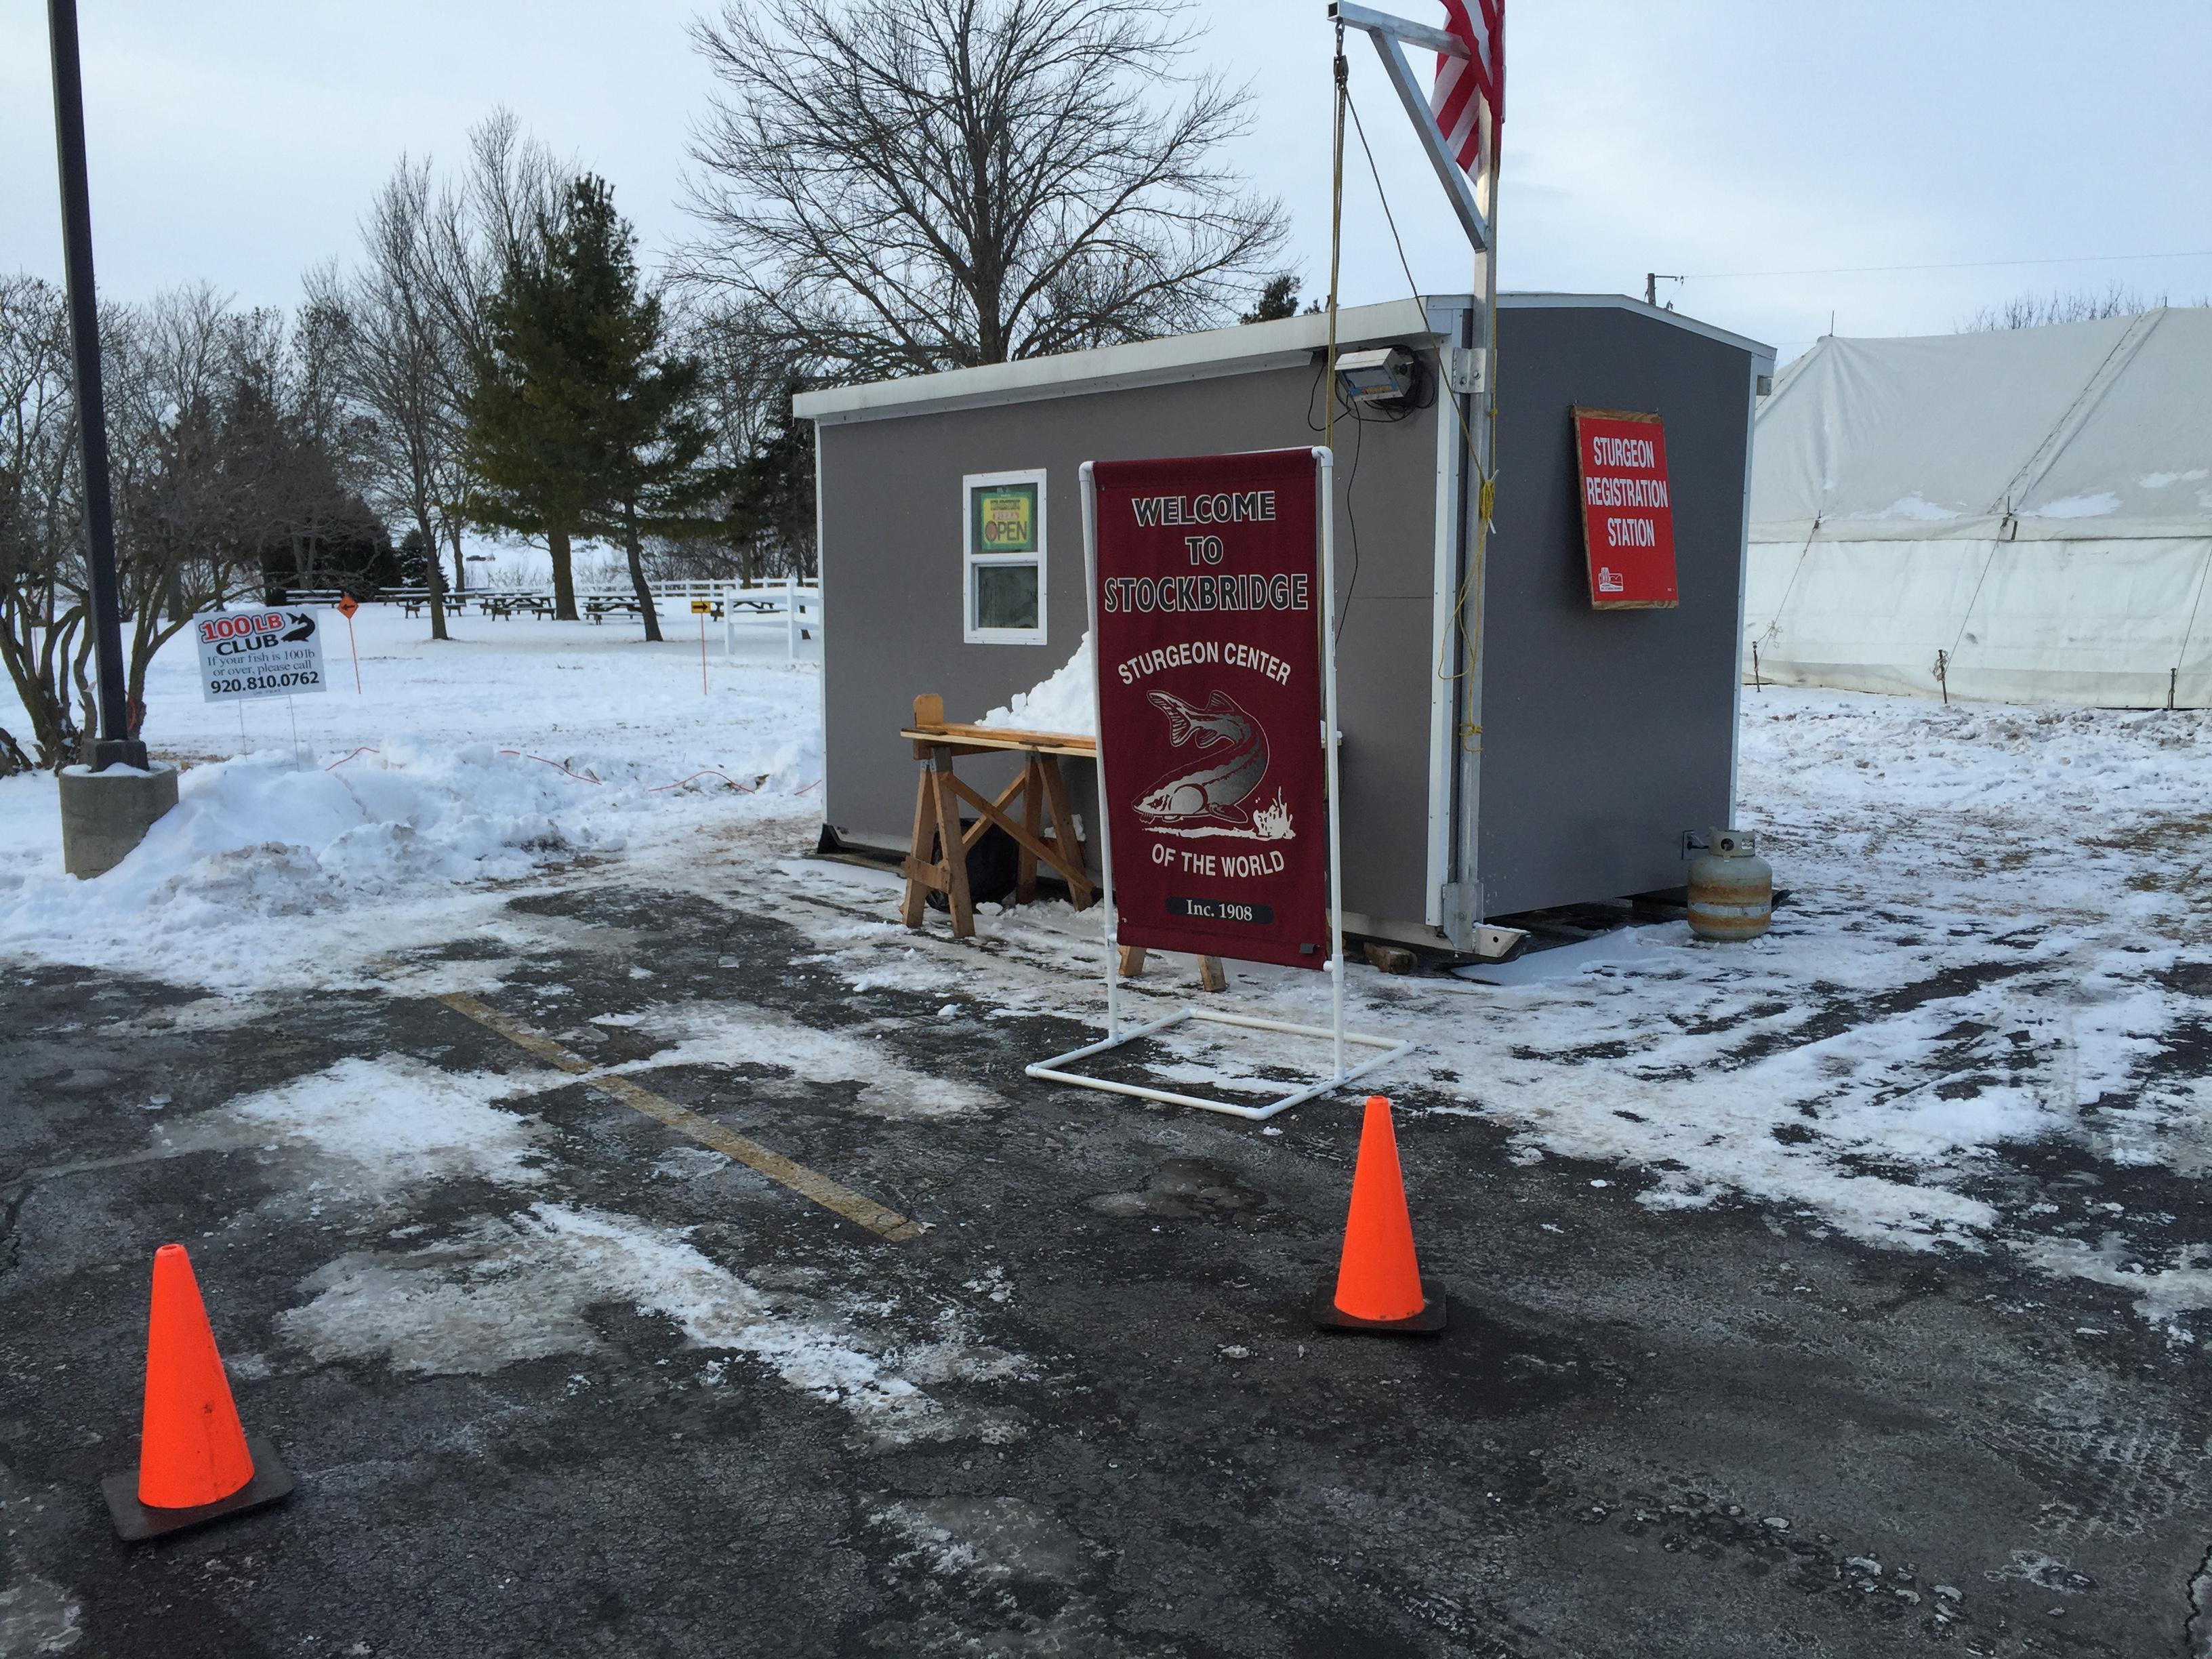 Sturgeon registration station at Stockbridge on Saturday, Feb. 10, 2018. (WLUK/Eric Peterson)